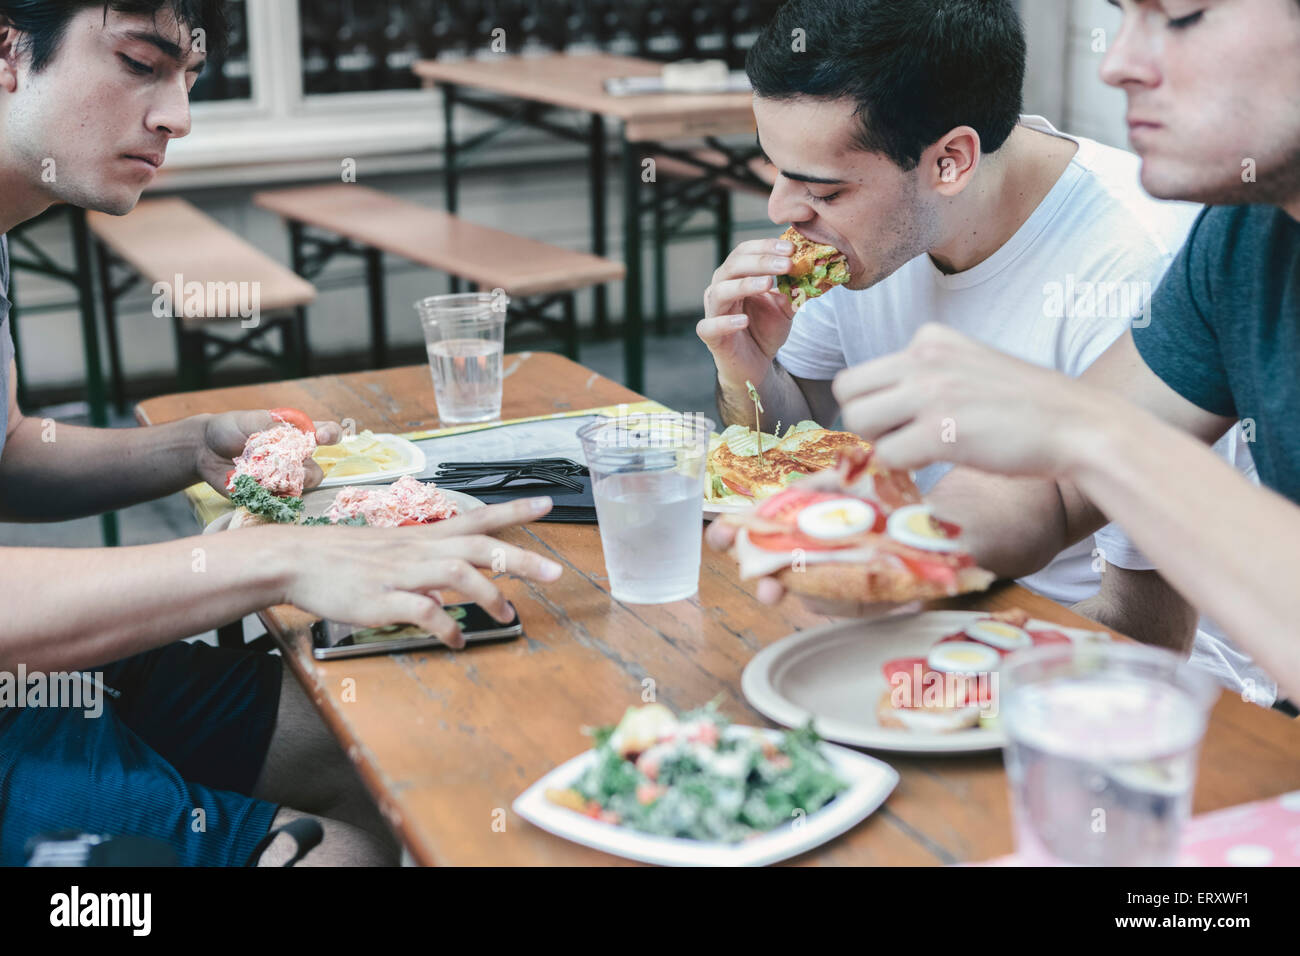 Friends having meal in public outdoor seating in New York's financial district Stock Photo